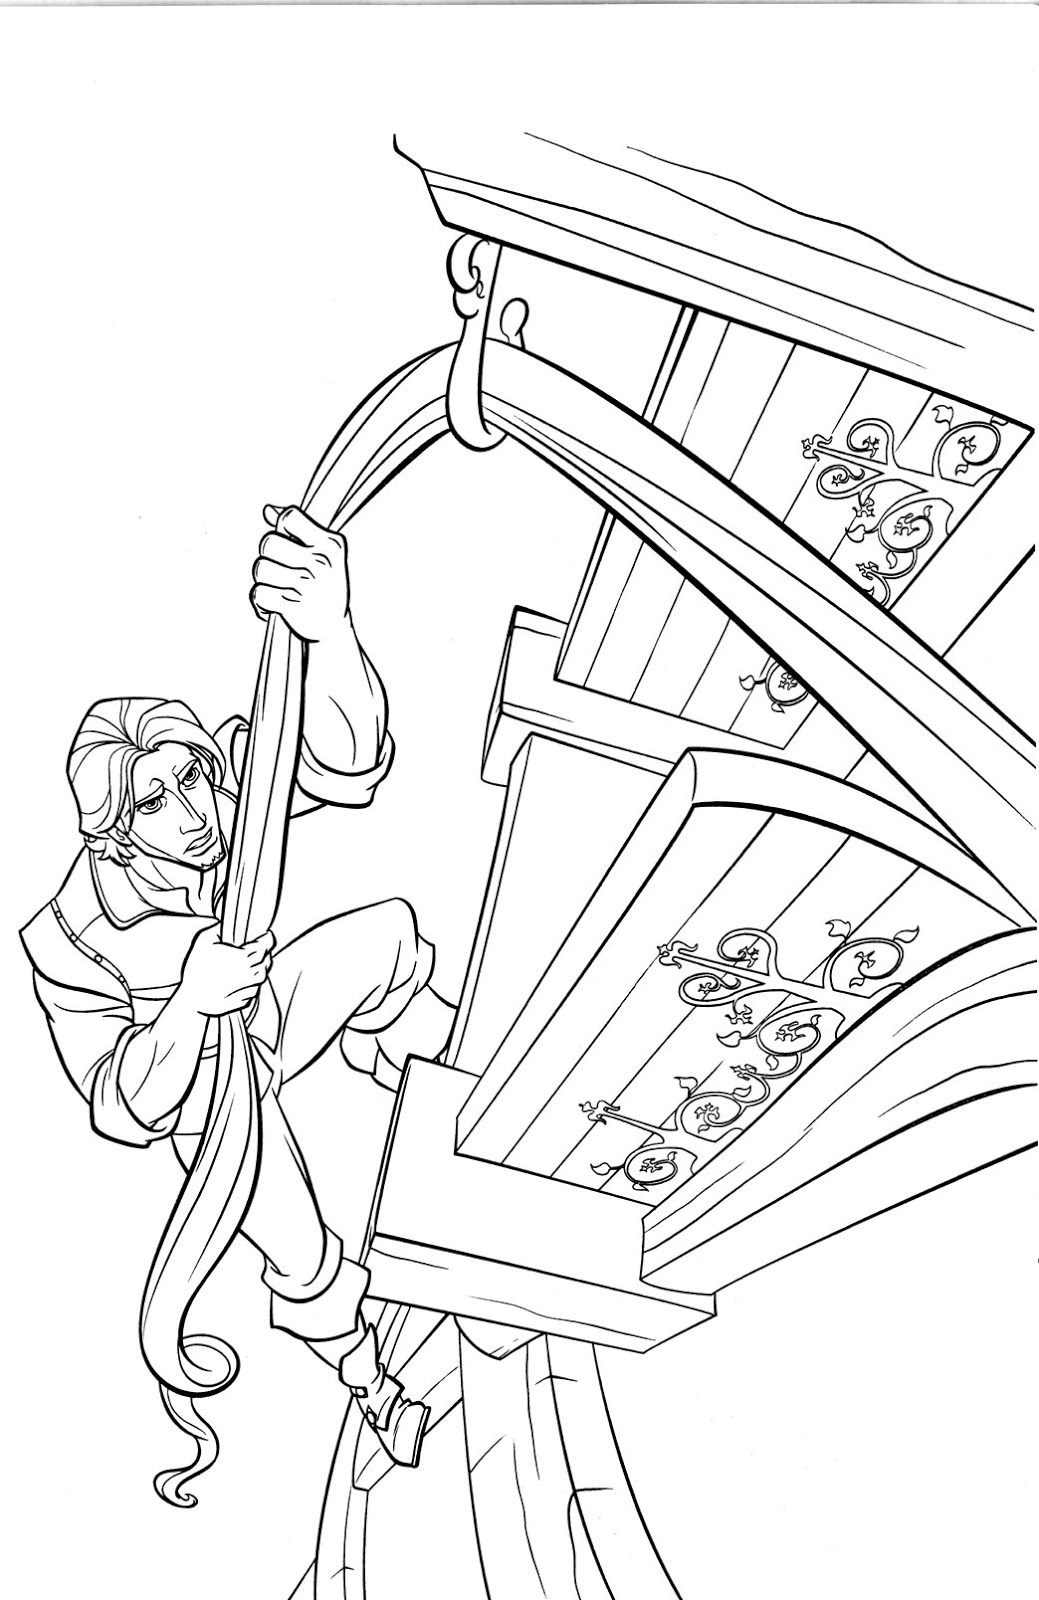 Tangled Princess Rapunzel and Flynn Rider Coloring Pages